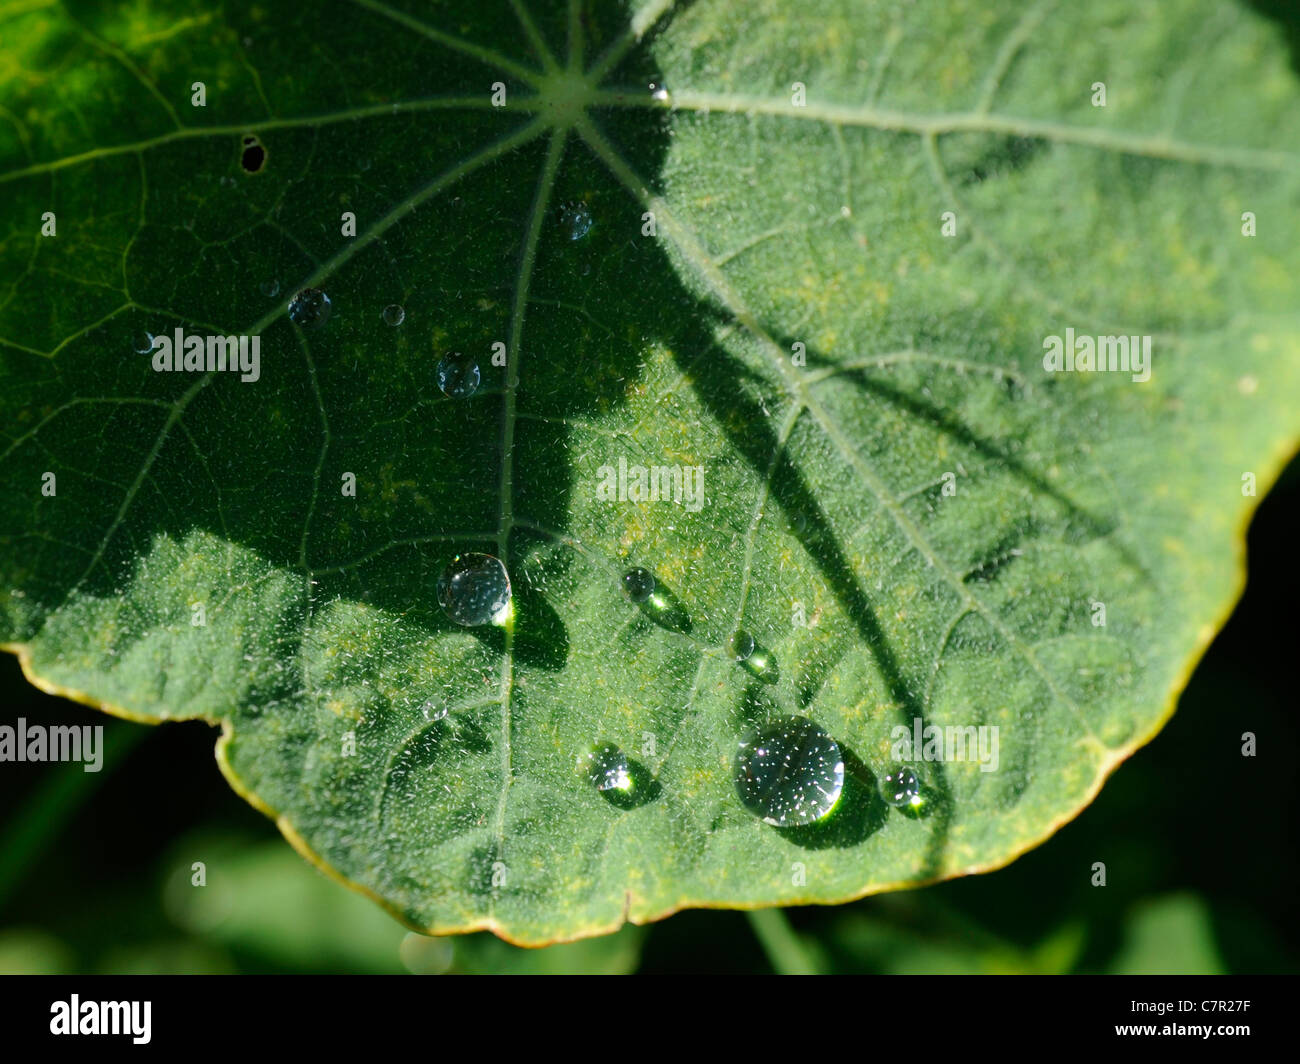 Drops of water on a nasturtium leaf - Stock Image